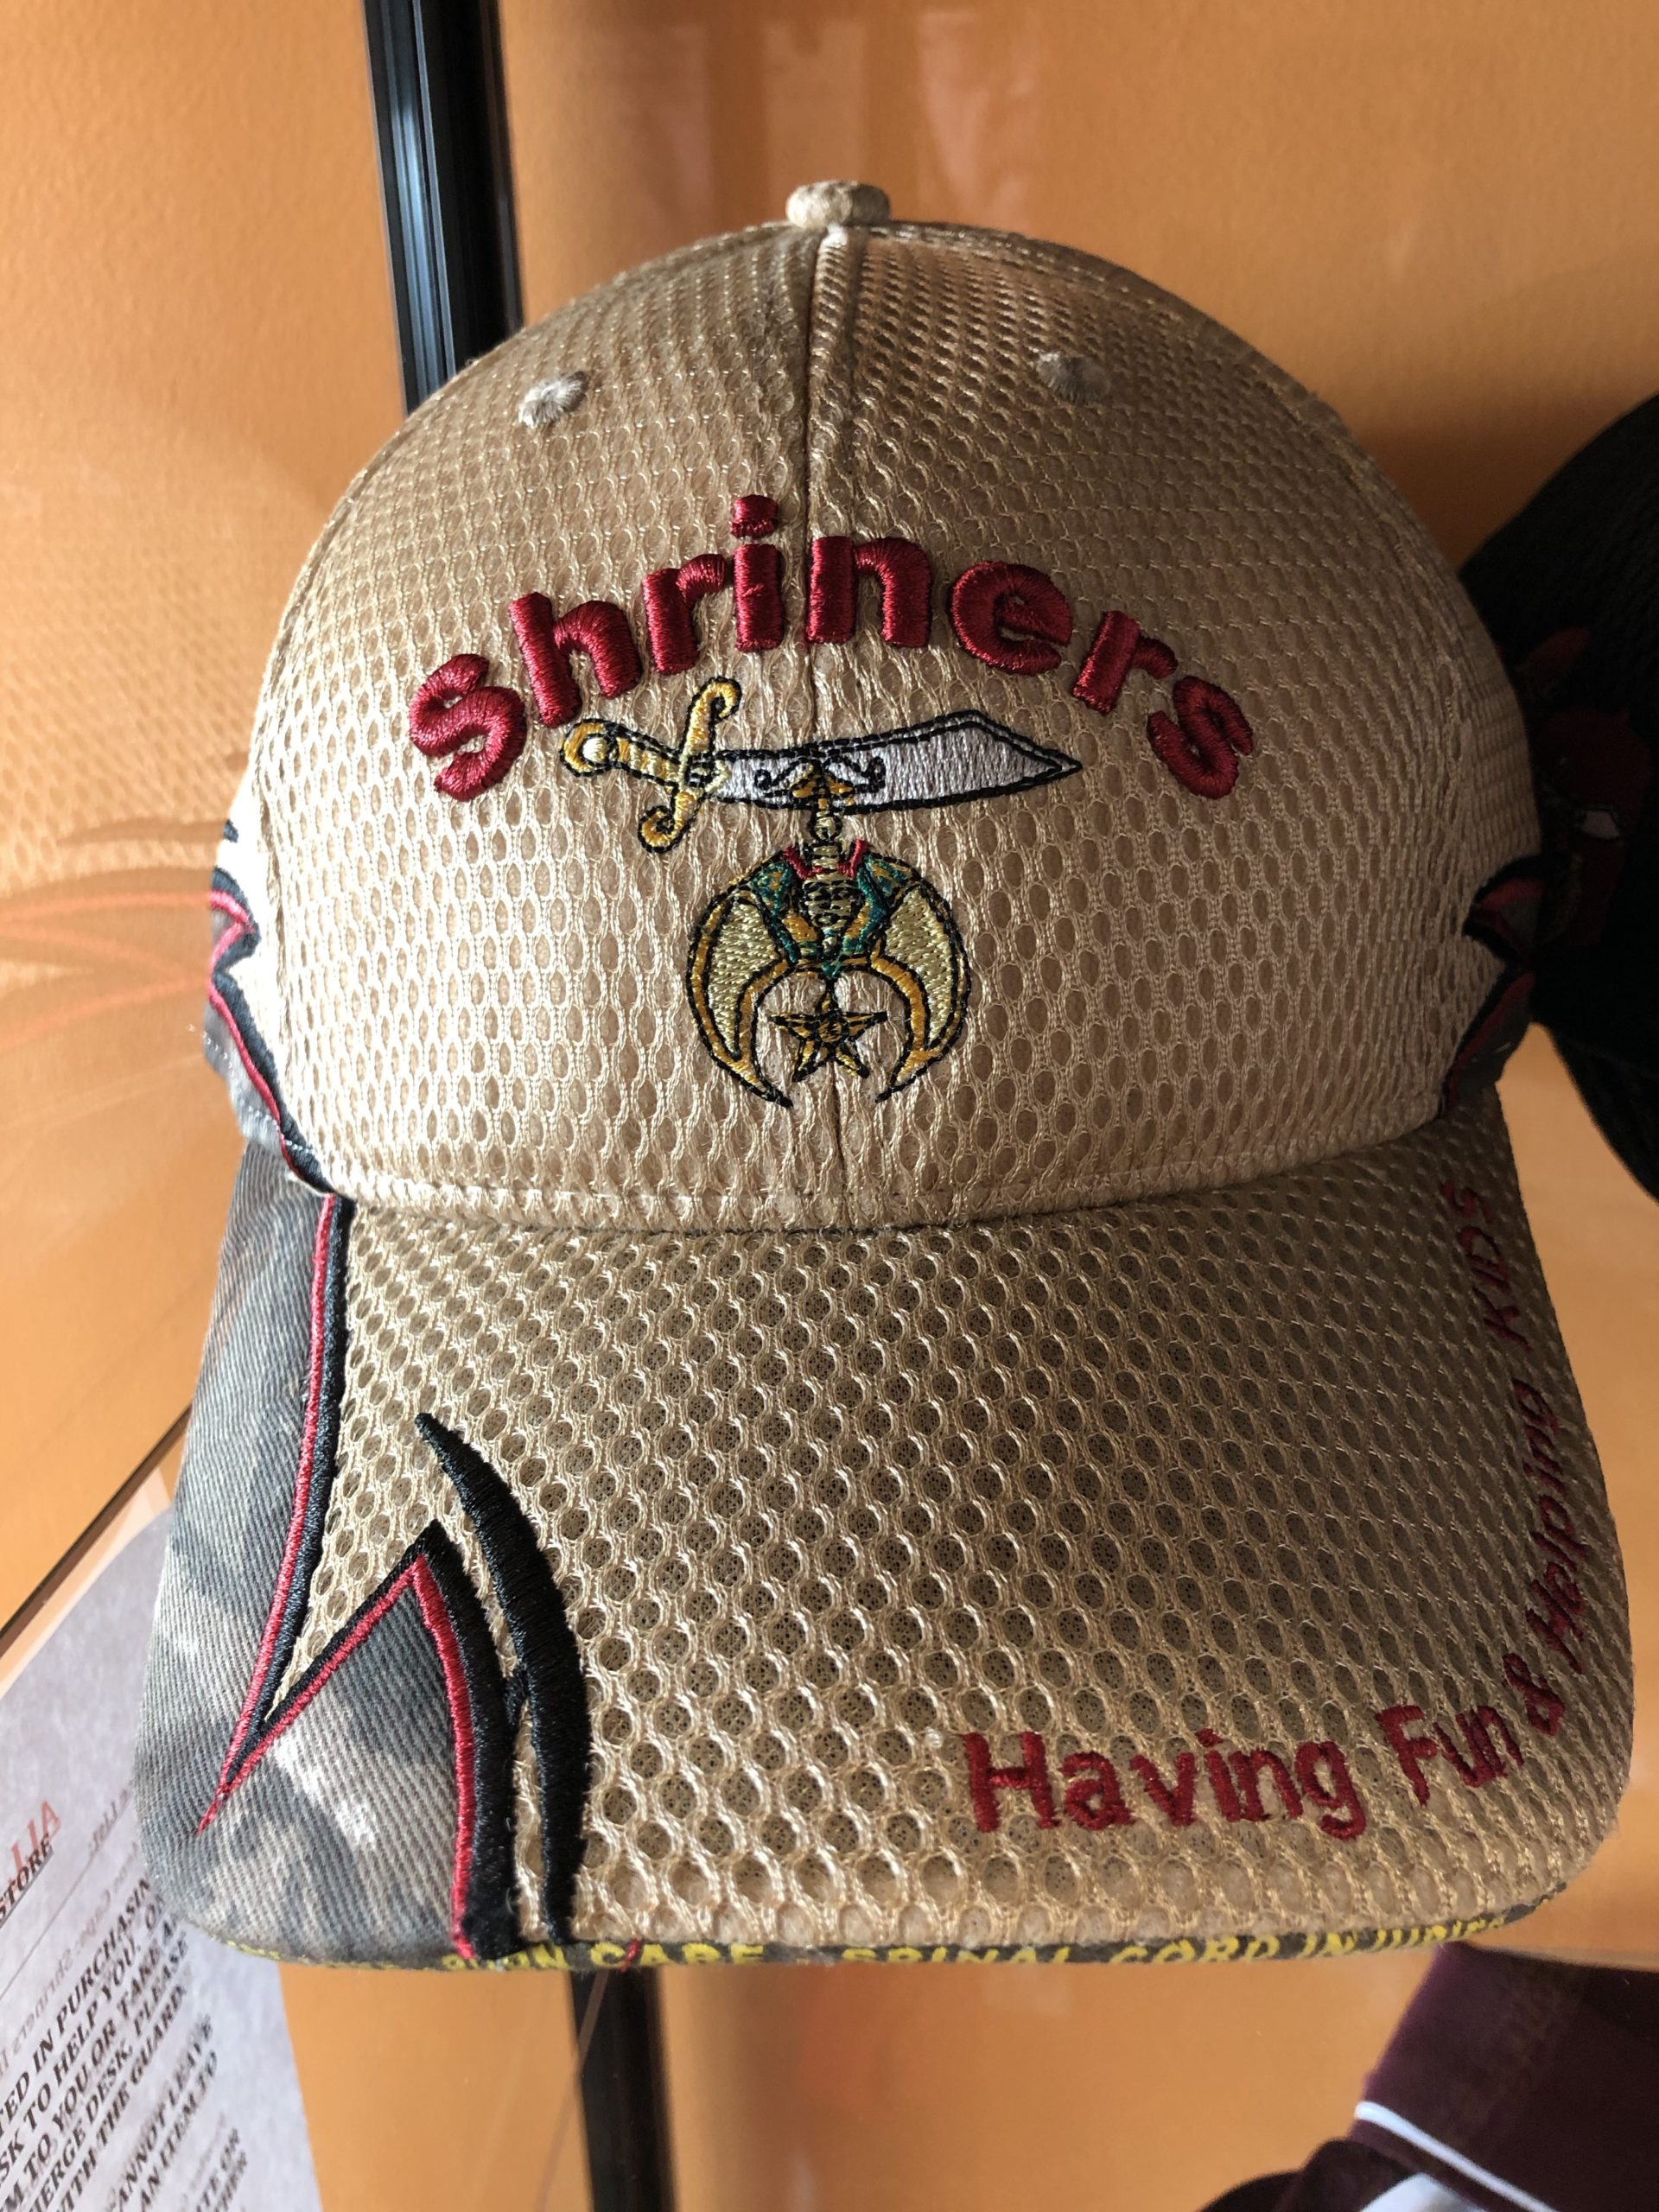 Item SH 3 - Shriners Cap with Camo on the side